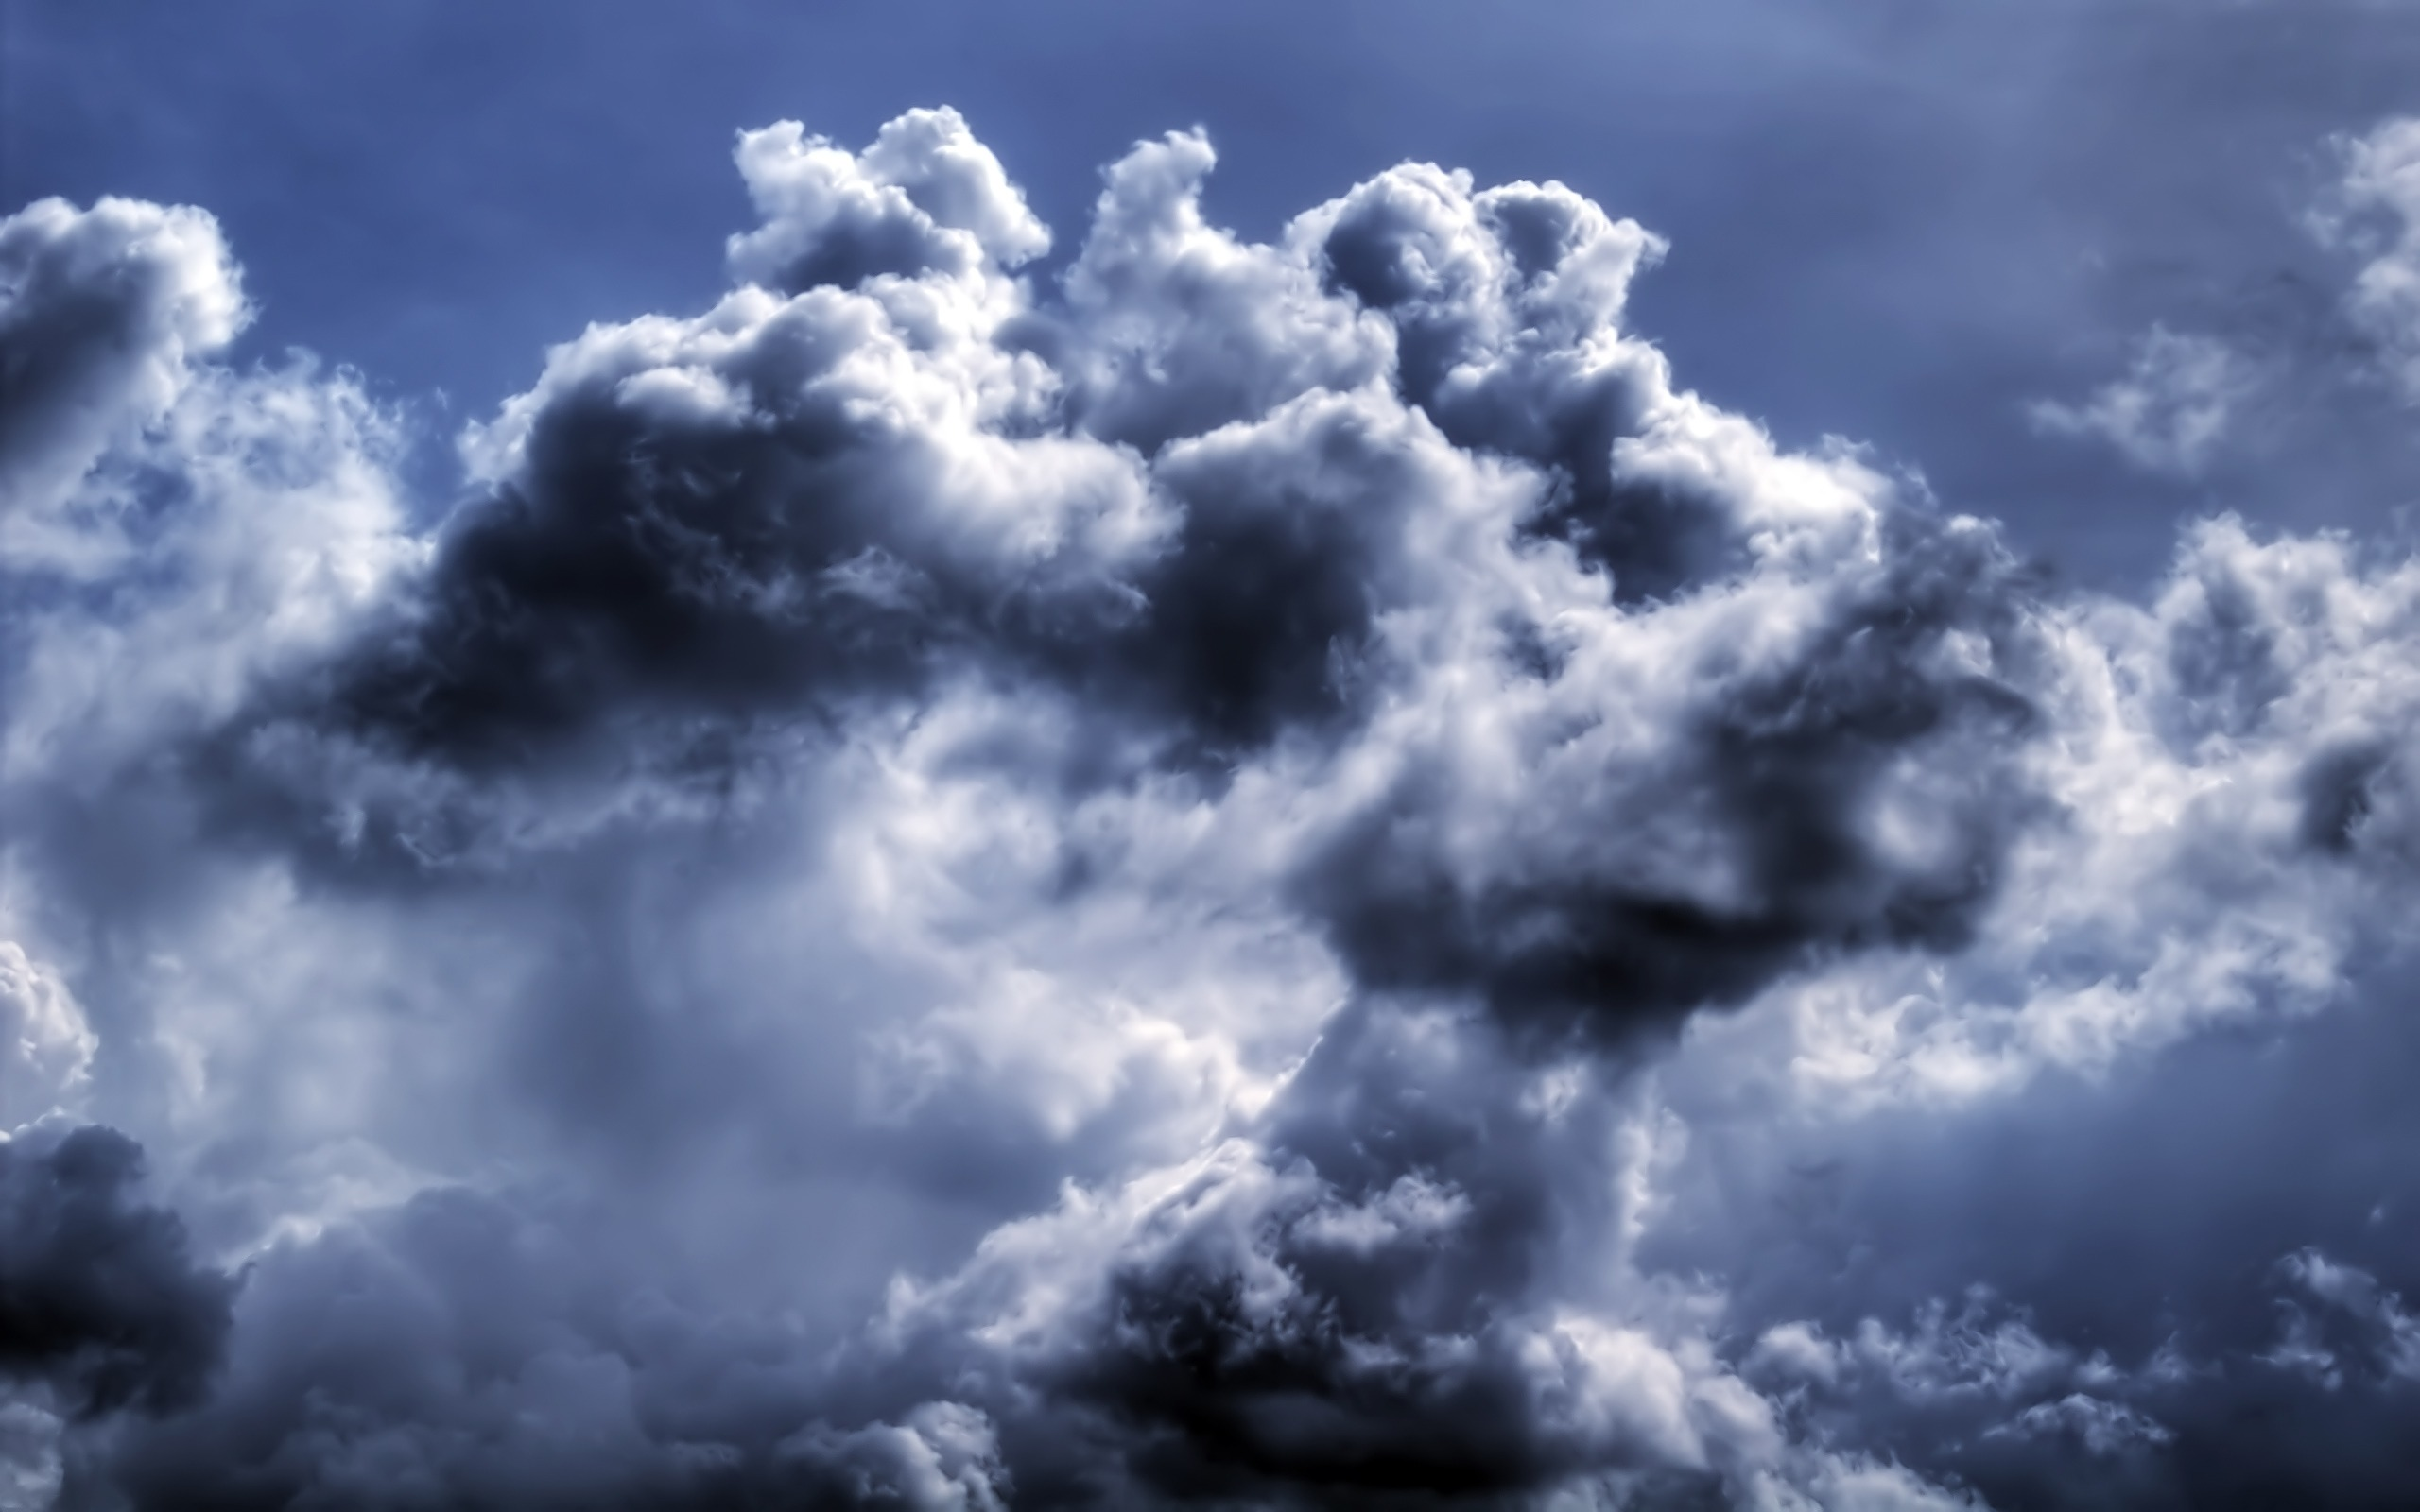 Clouds wallpaper wallpapers for free download about 3026